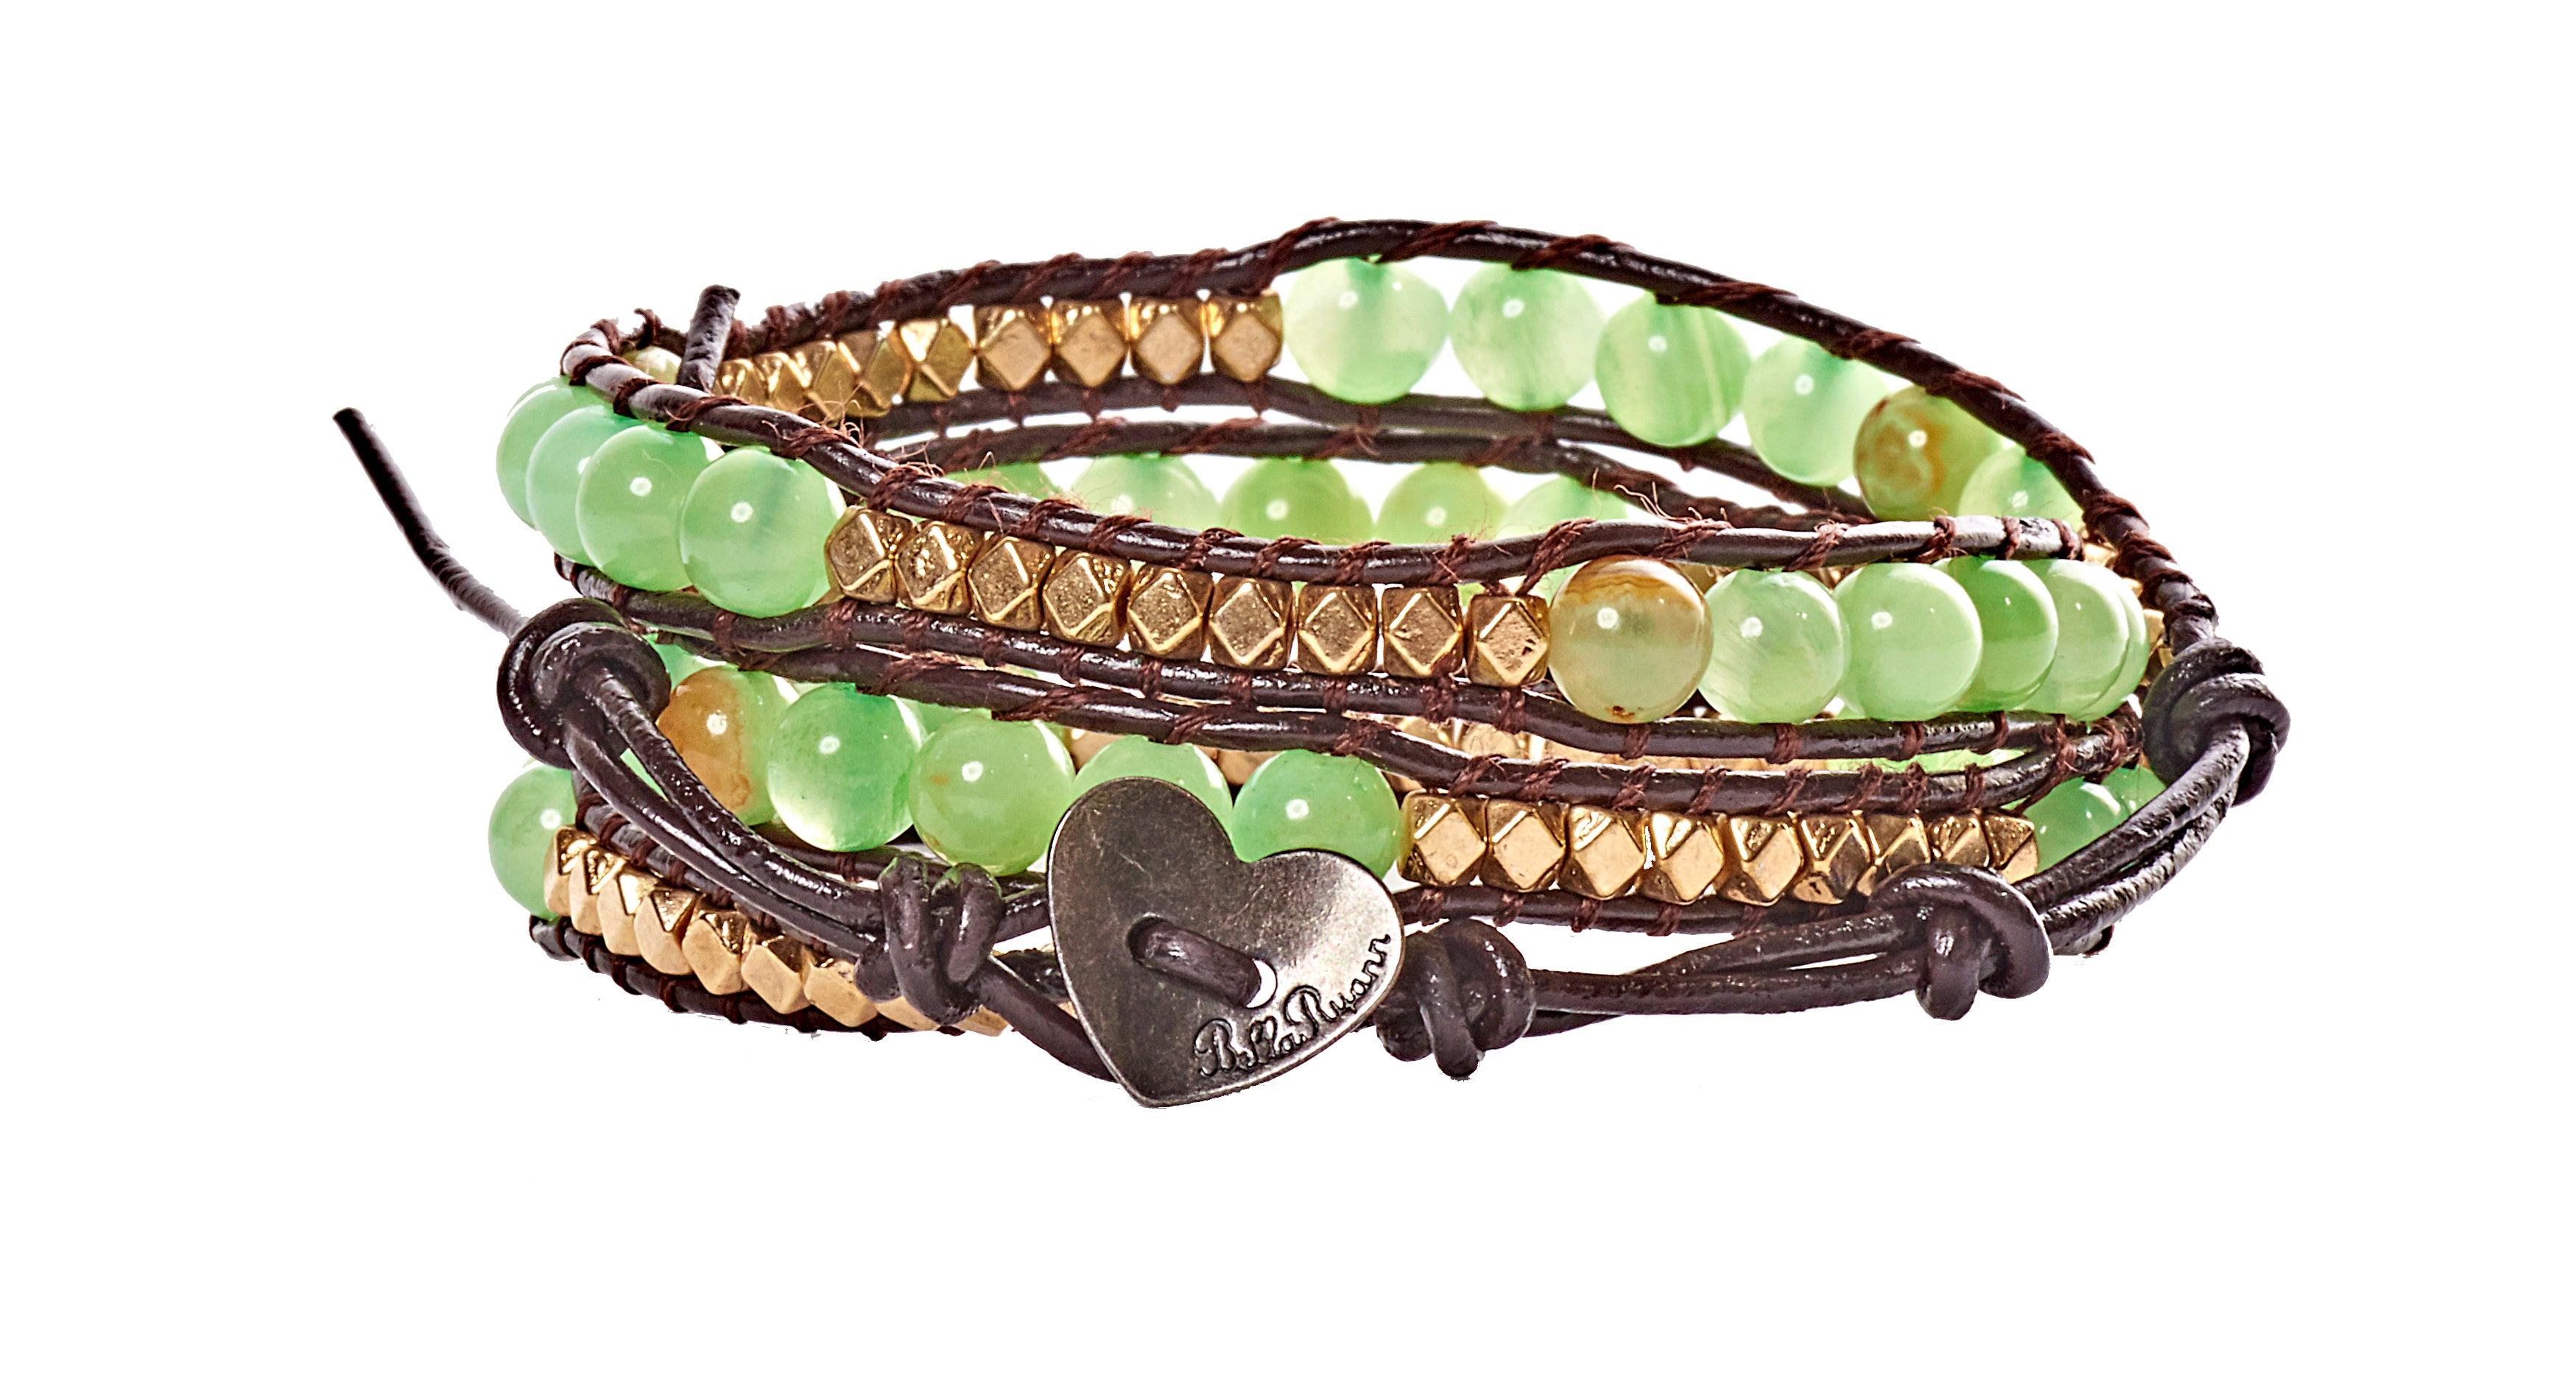 ab73a44e9d52 Halle - Gold Metal   Green Beads with Dark Brown Leather - Triple Wrap  Bracelet -